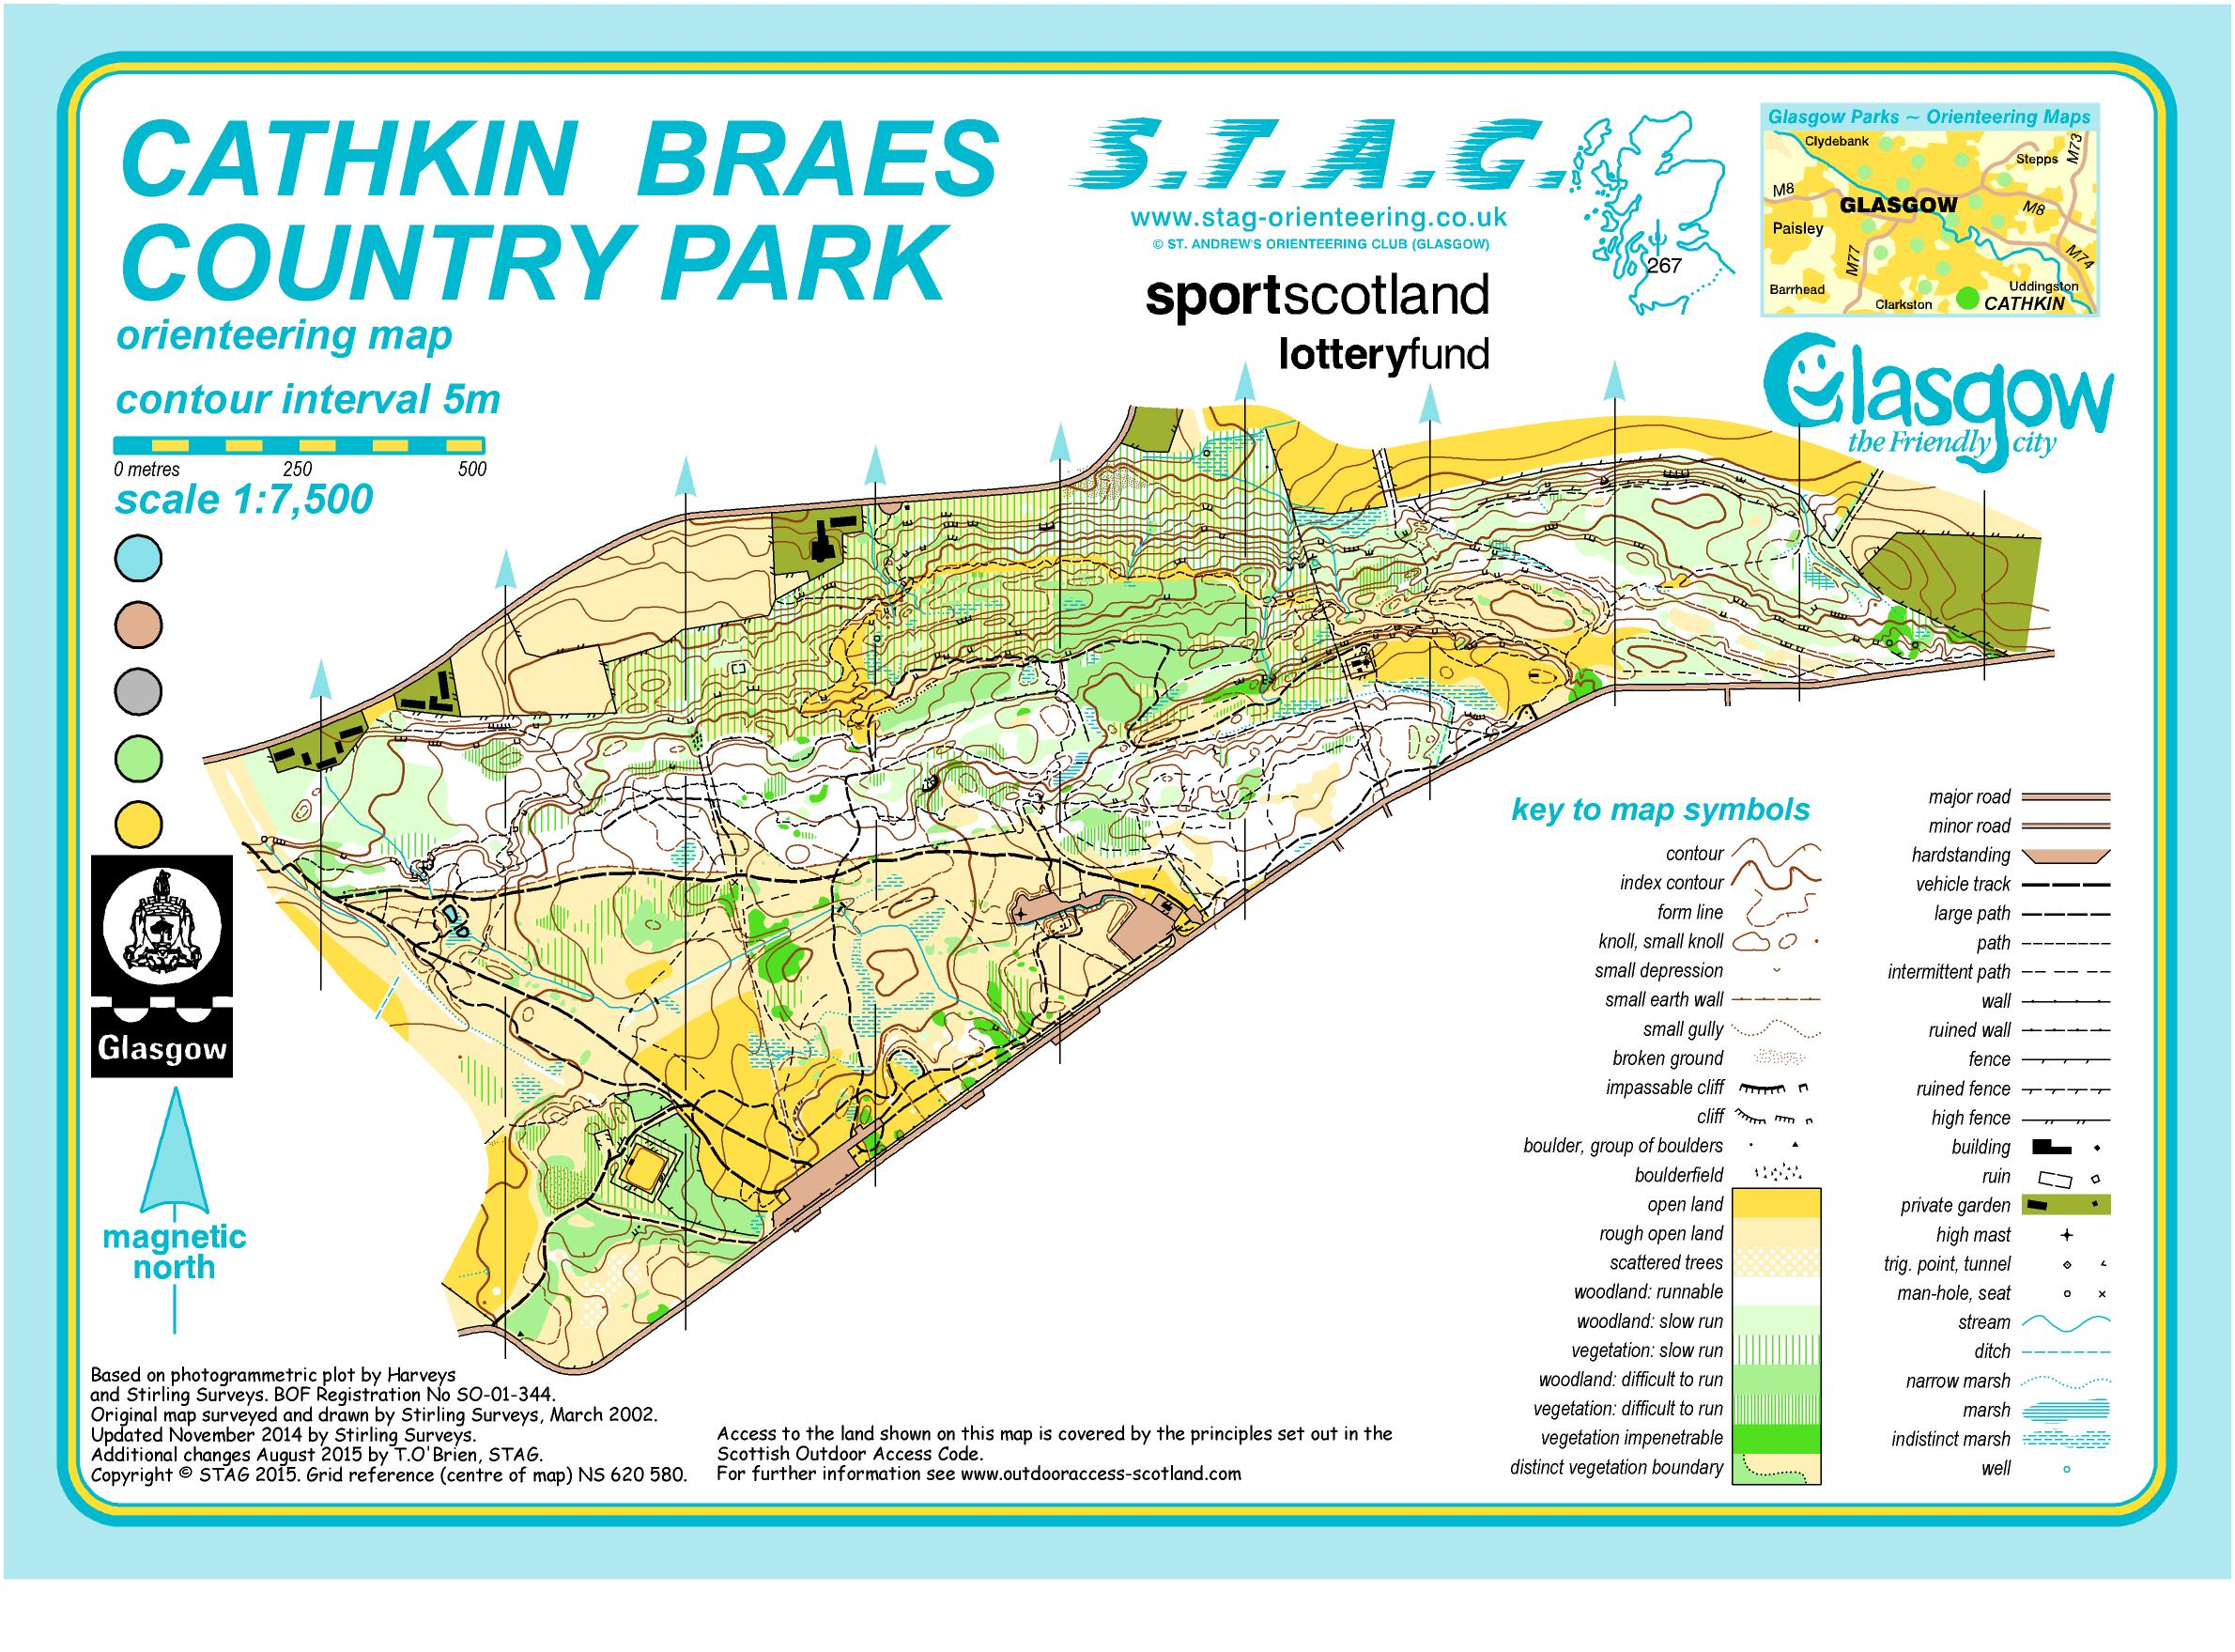 GPC2015 - 1 Cathkin Brae - August 30th 2015 - Orienteering Map from Stag